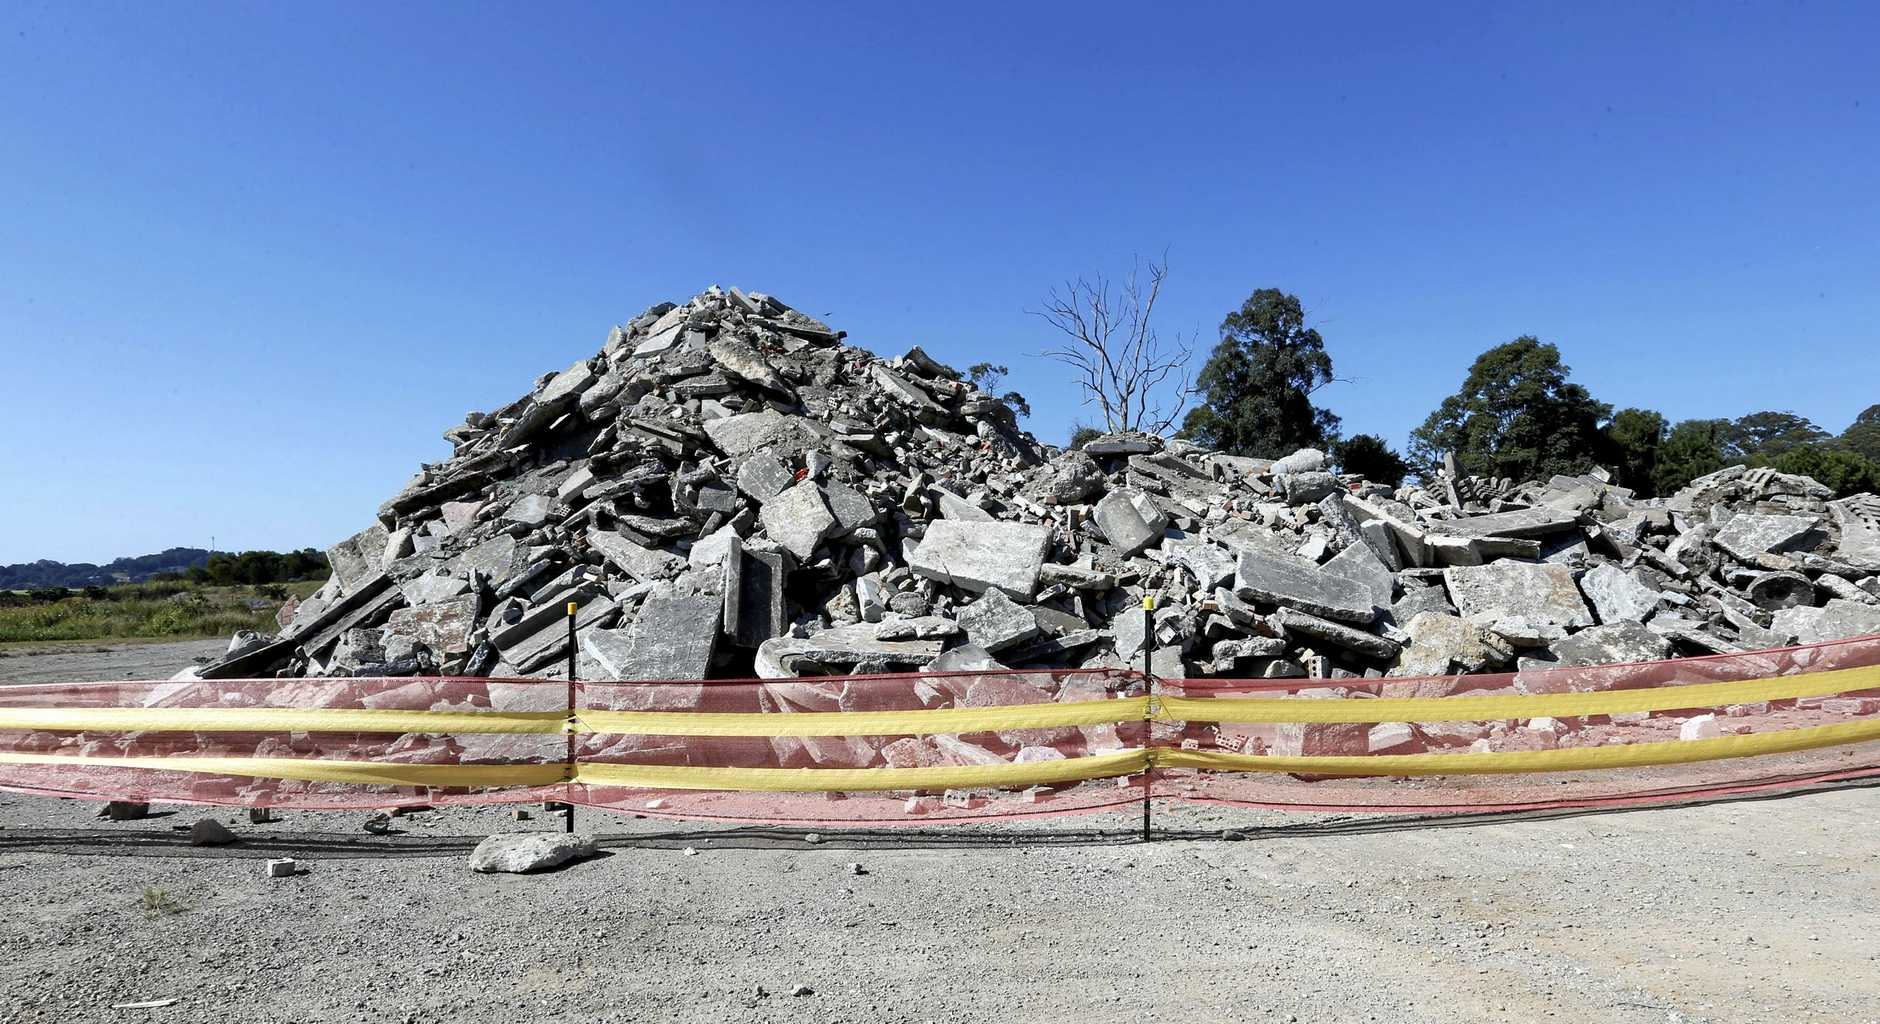 PLENTY OF ROOM: Tweed Shire Council says it can manage 100 years of waste following approval to use Quirks Quarry for landfill.